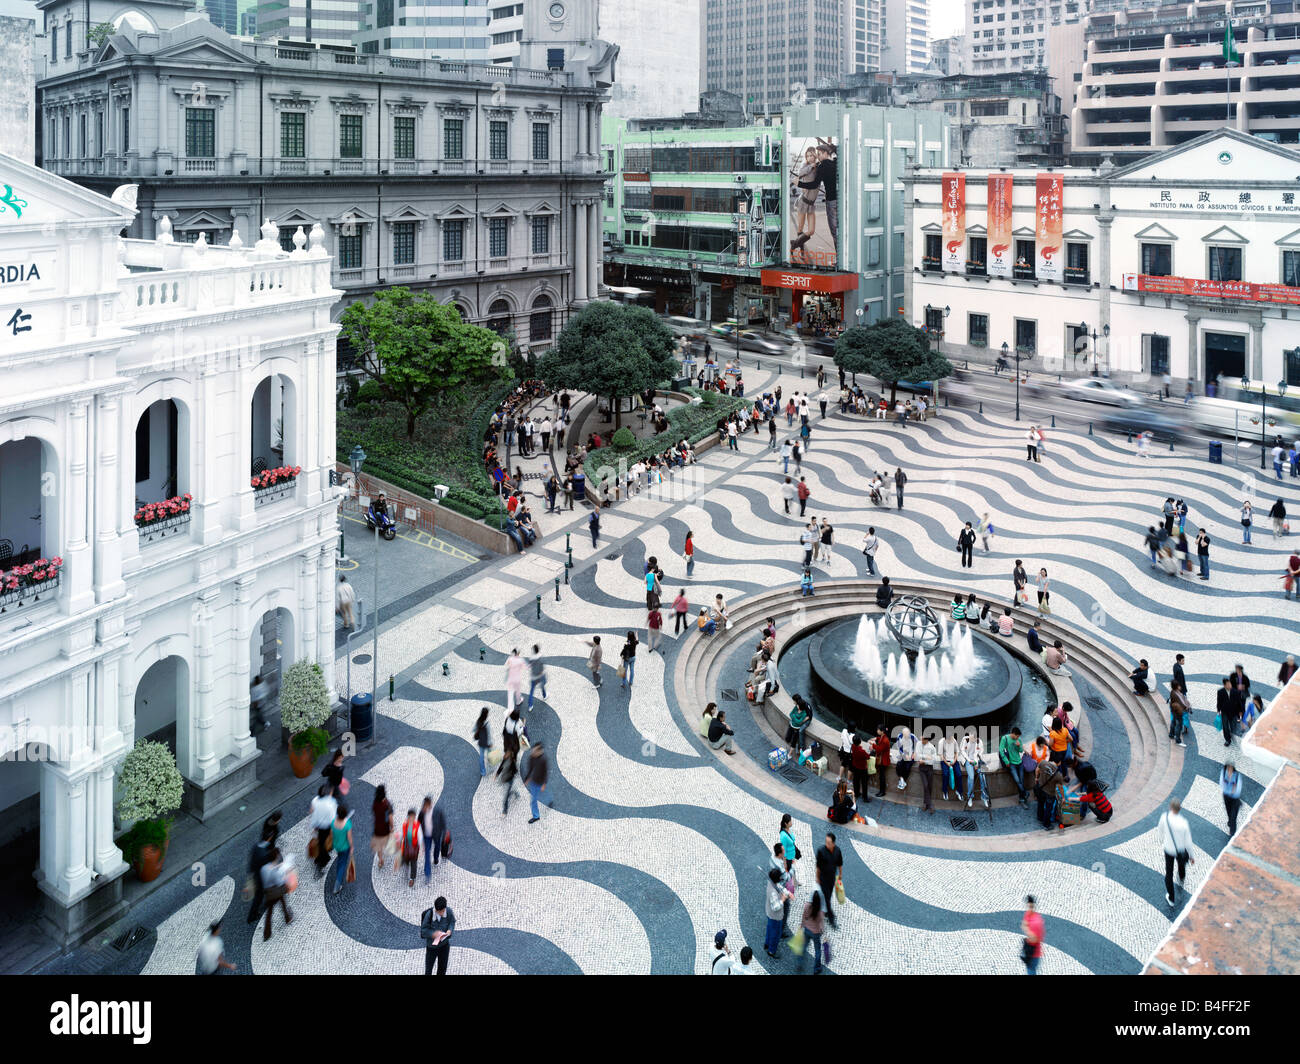 The largo do Senado (Senate Square) facing the Loyal Senate located in Central Macau. - Stock Image